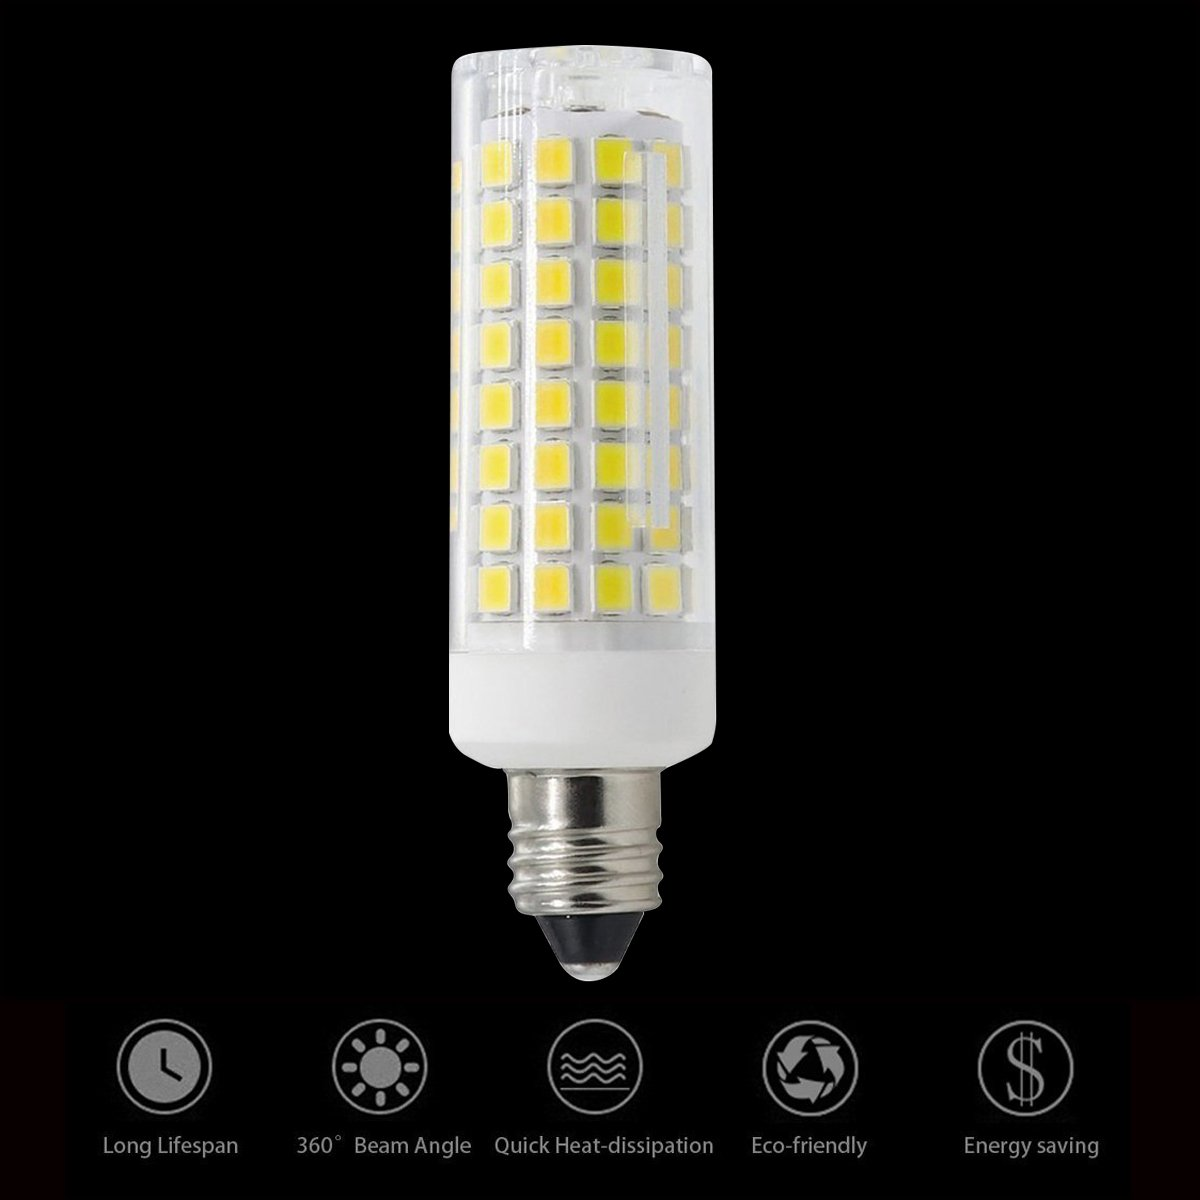 Indoor Lighting Dimmable 7W 75W Halogen Bulb Equivalent XRZT LED E11 Bulb 100W 75W E11 LED Mini Candelabra Base Light Bulbs Warm Pack of 4